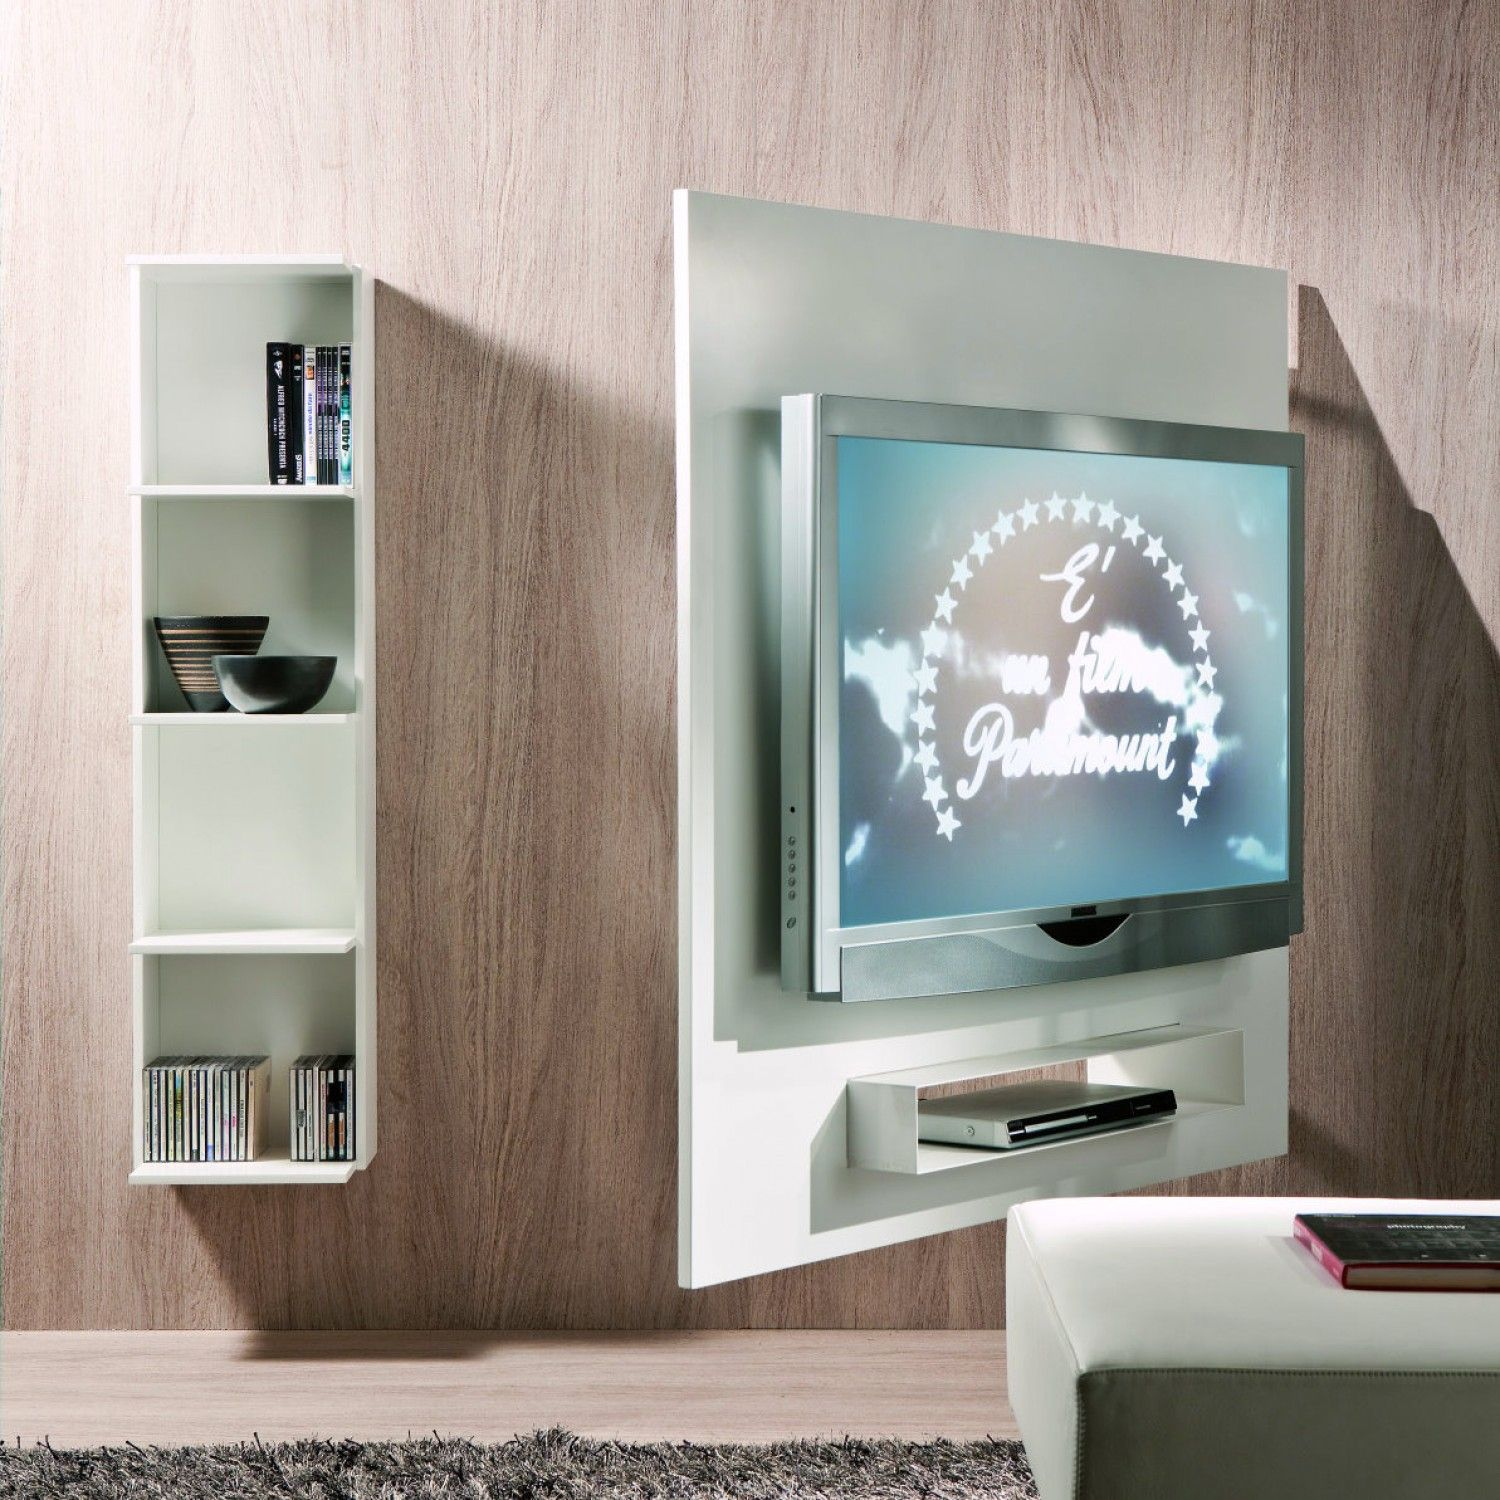 ghost schwenkbares tv-wandpaneel mit bücherregal | tv mounting ideas